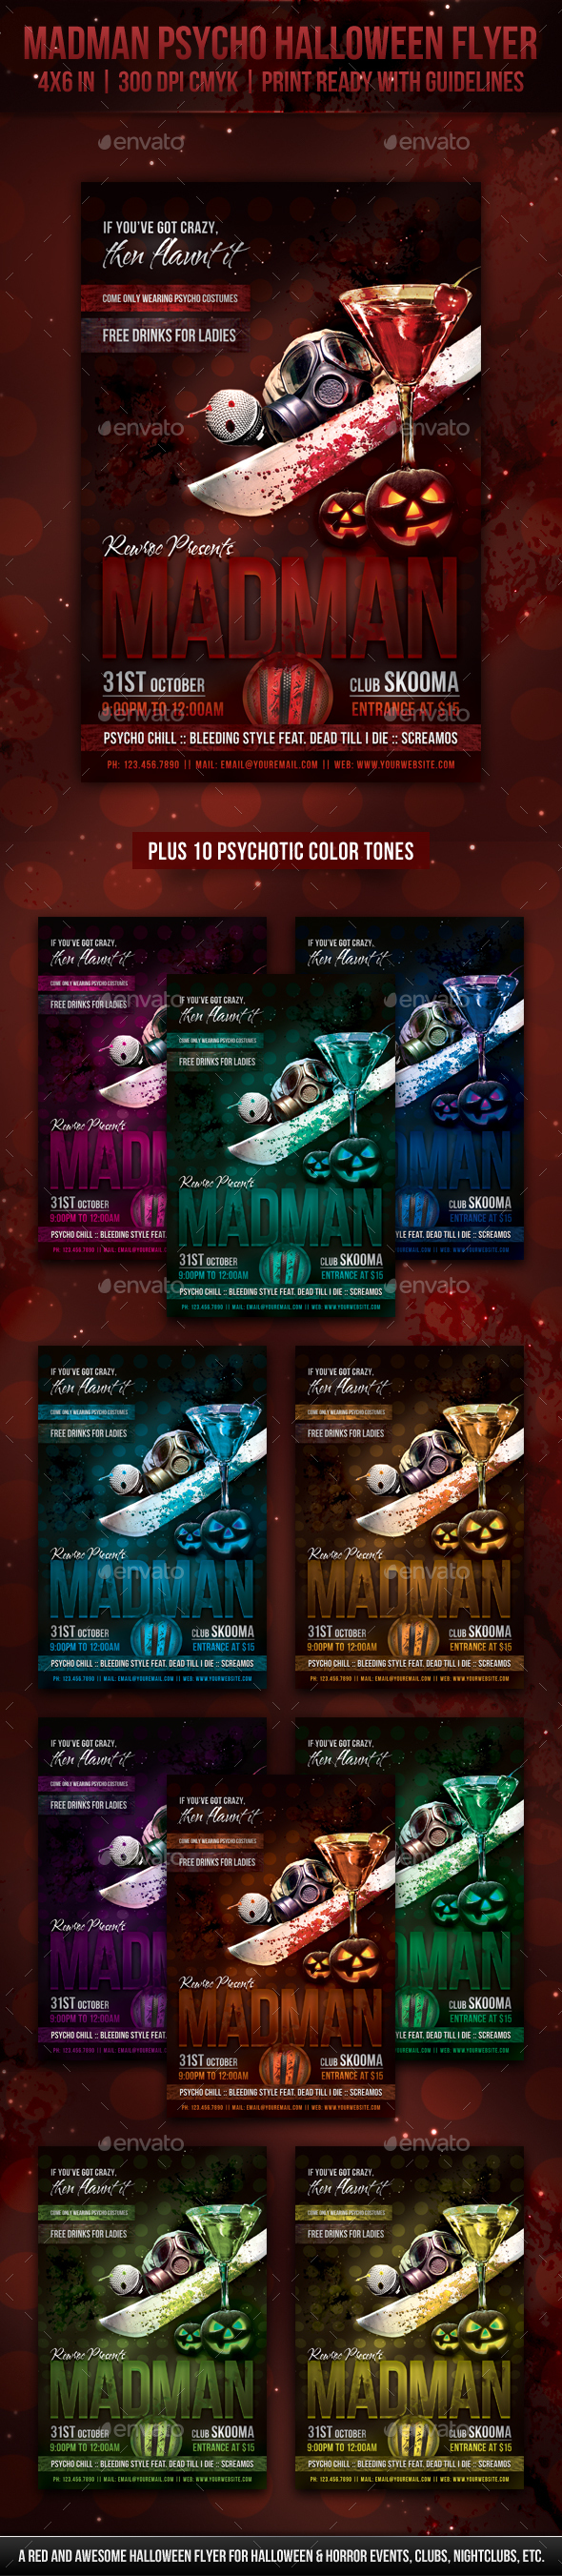 Madman Psycho Halloween Flyer - Holidays Events